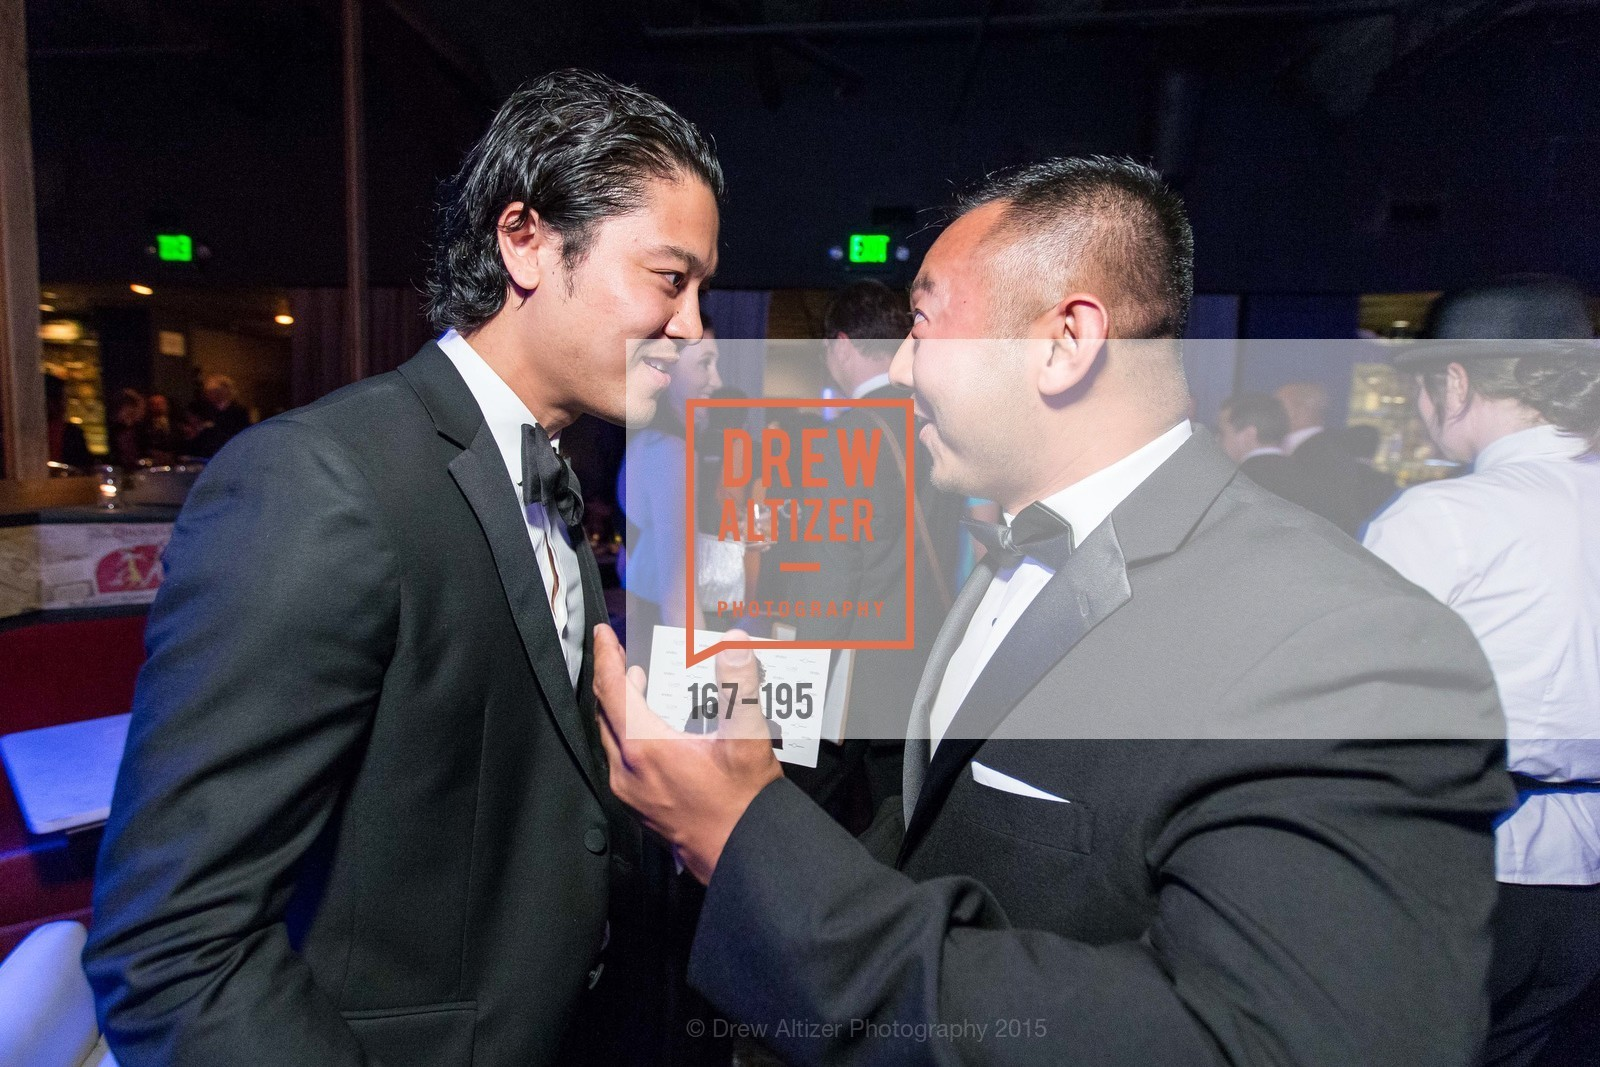 Kevin Gueco, Eric Li, Climb Real Estate and Sindeo Celebrate the Launch of Million Dollar Listing San Francisco, Local Edition San Francisco. 691 Market St, July 8th, 2015